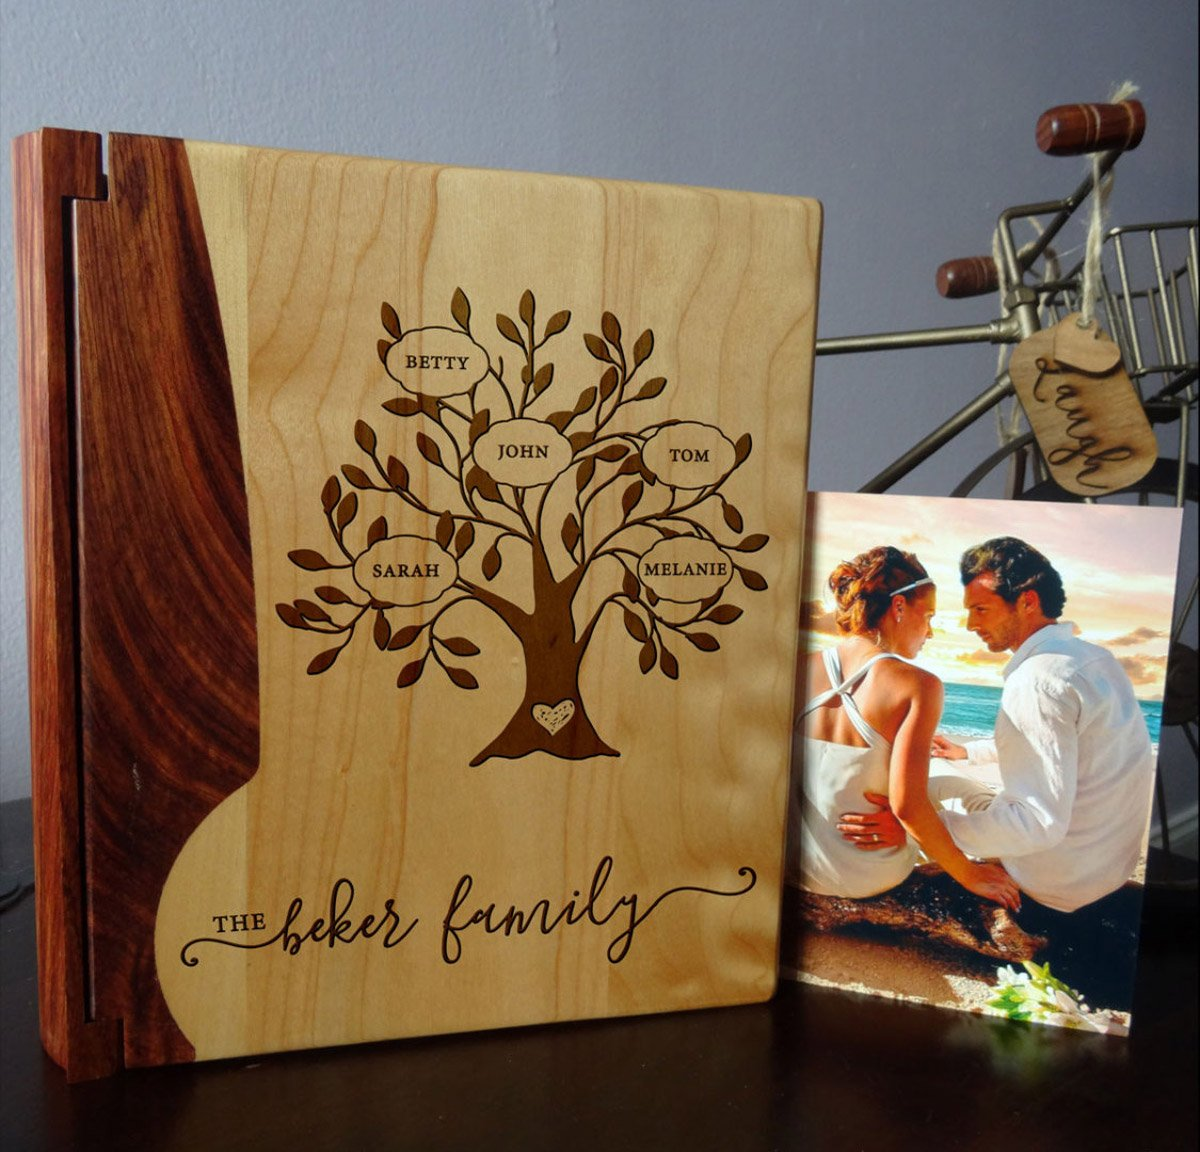 Personalized Wood Cover Photo Album, Custom Engraved Family Tree Wedding Album, Style 121 (Maple & Walnut Cover)